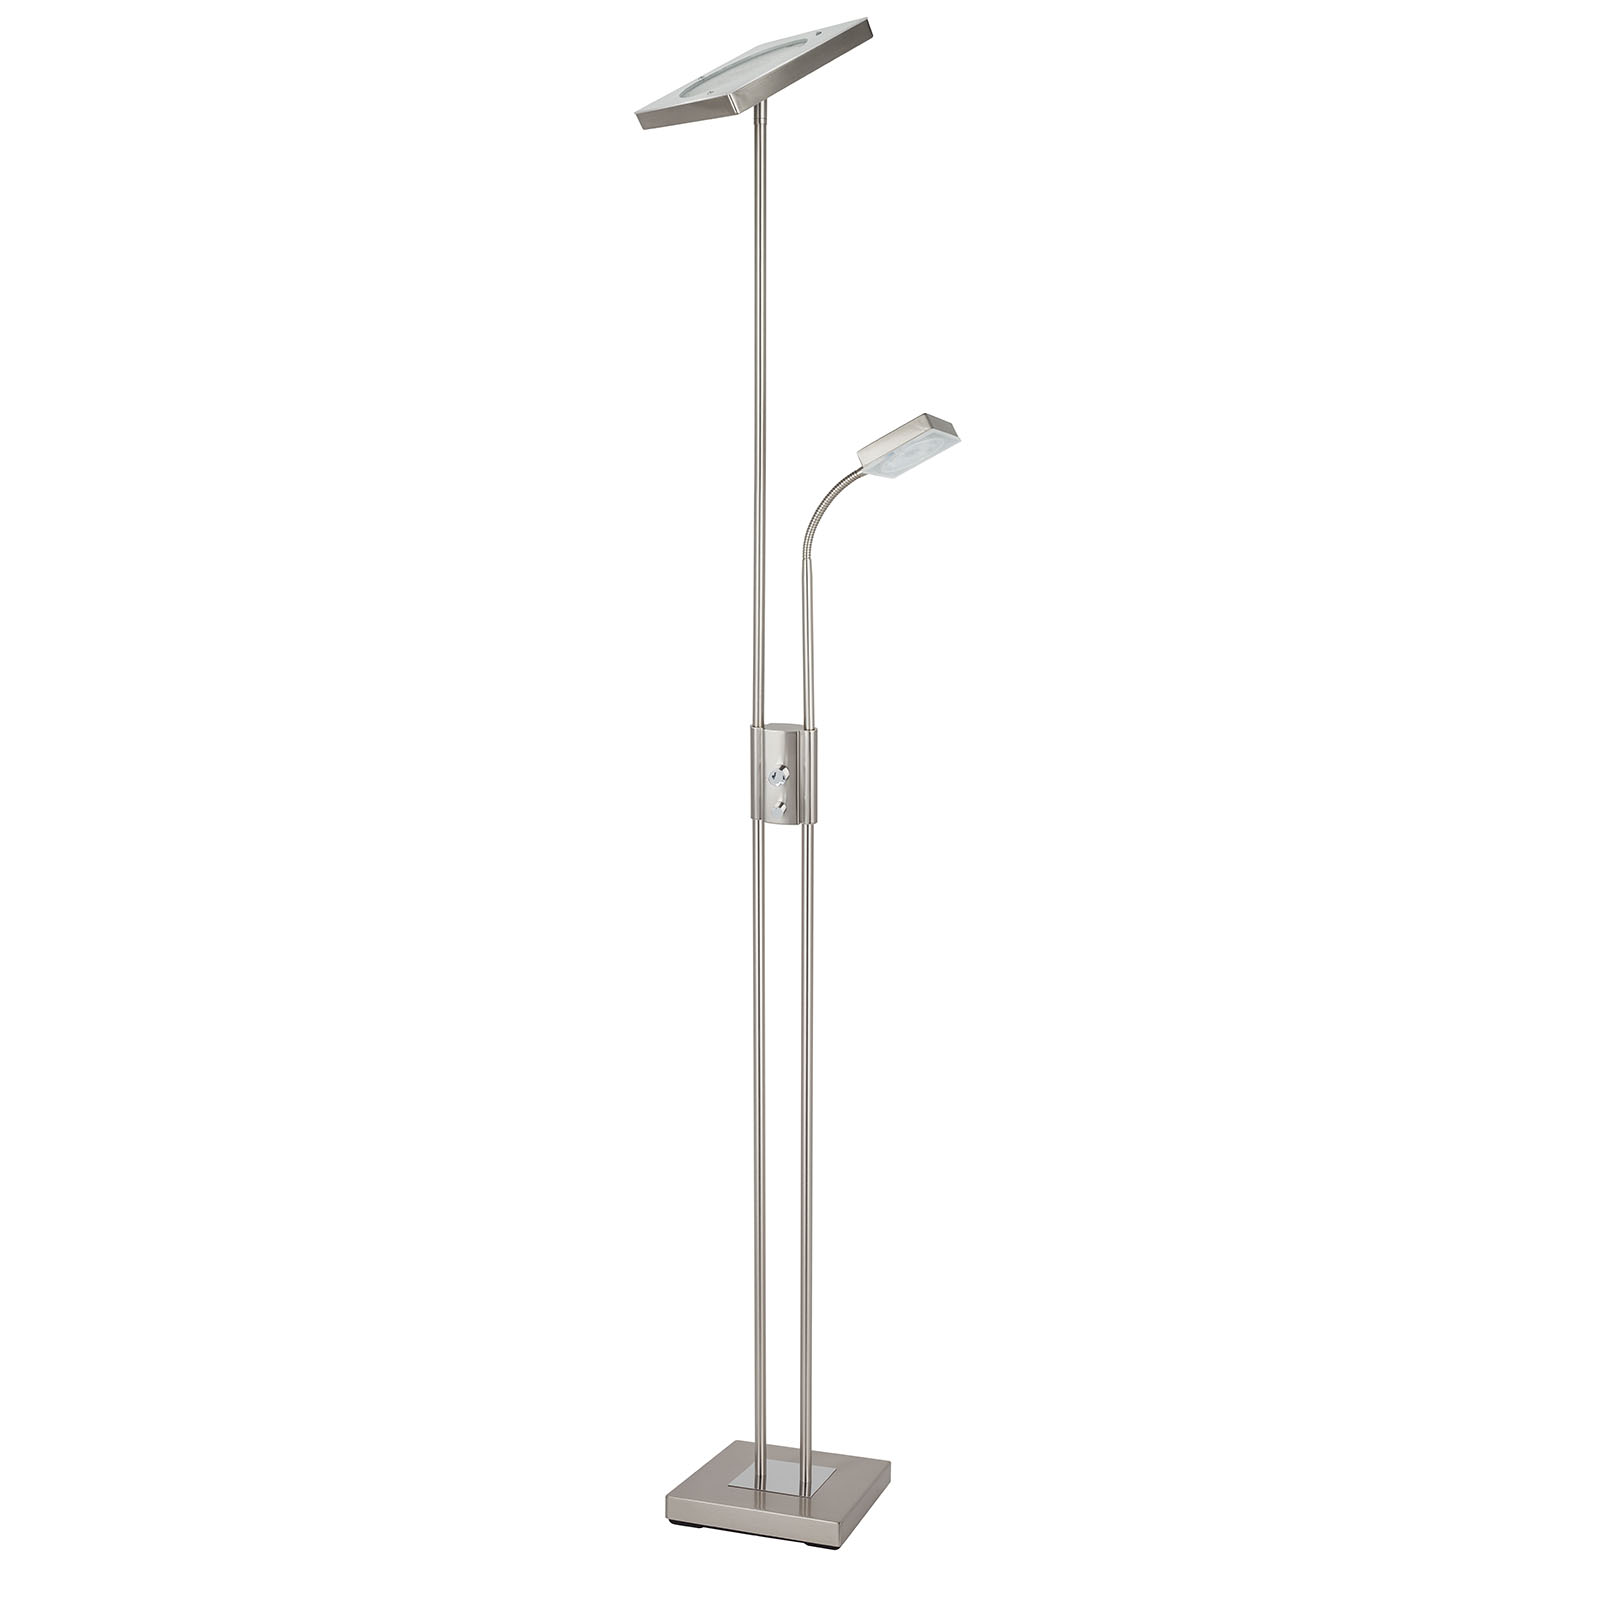 LAMPURA LED-Deckenfluter - Nickel matt - dimmbar - 180 cm hoch